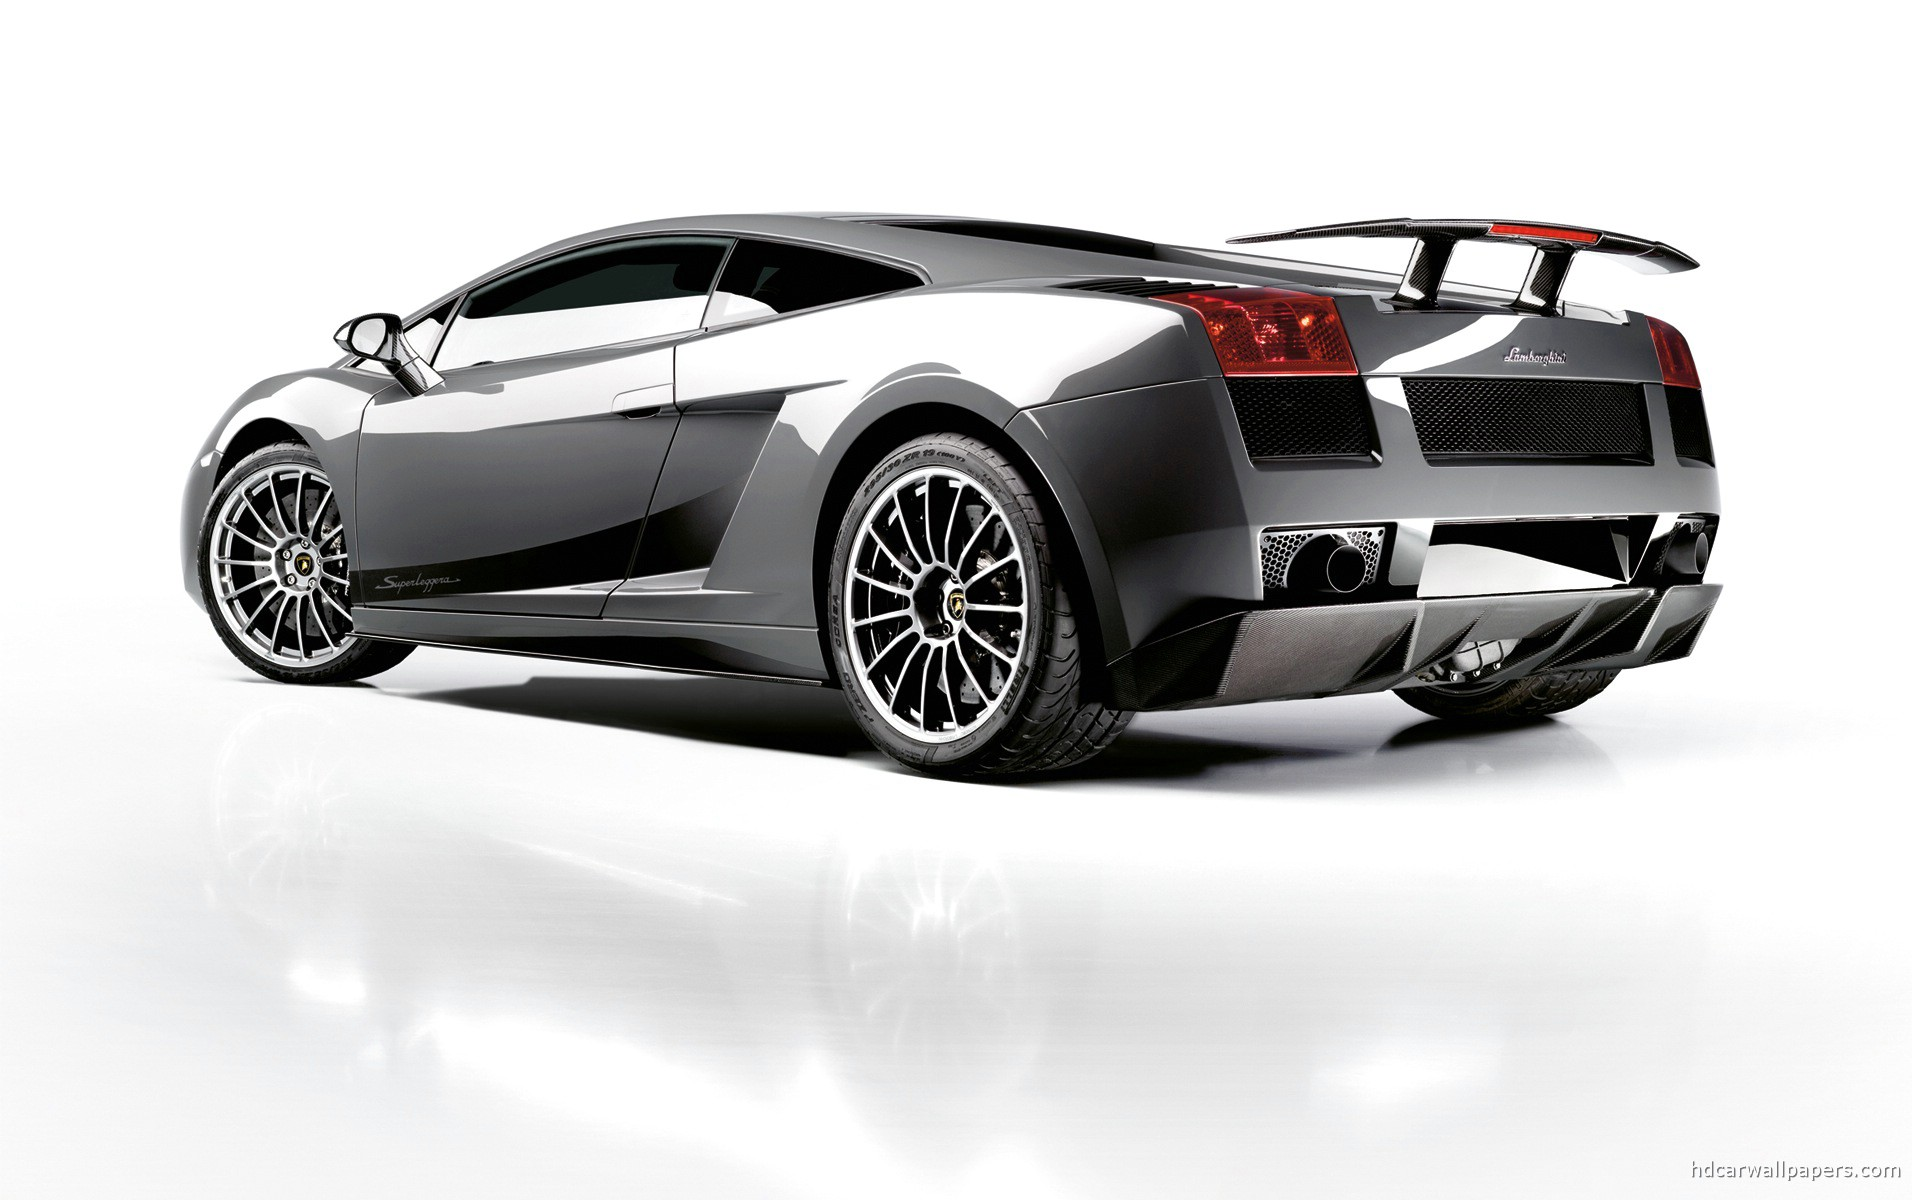 Lamborghini Gallardo Superleggera 2 741.51 Kb